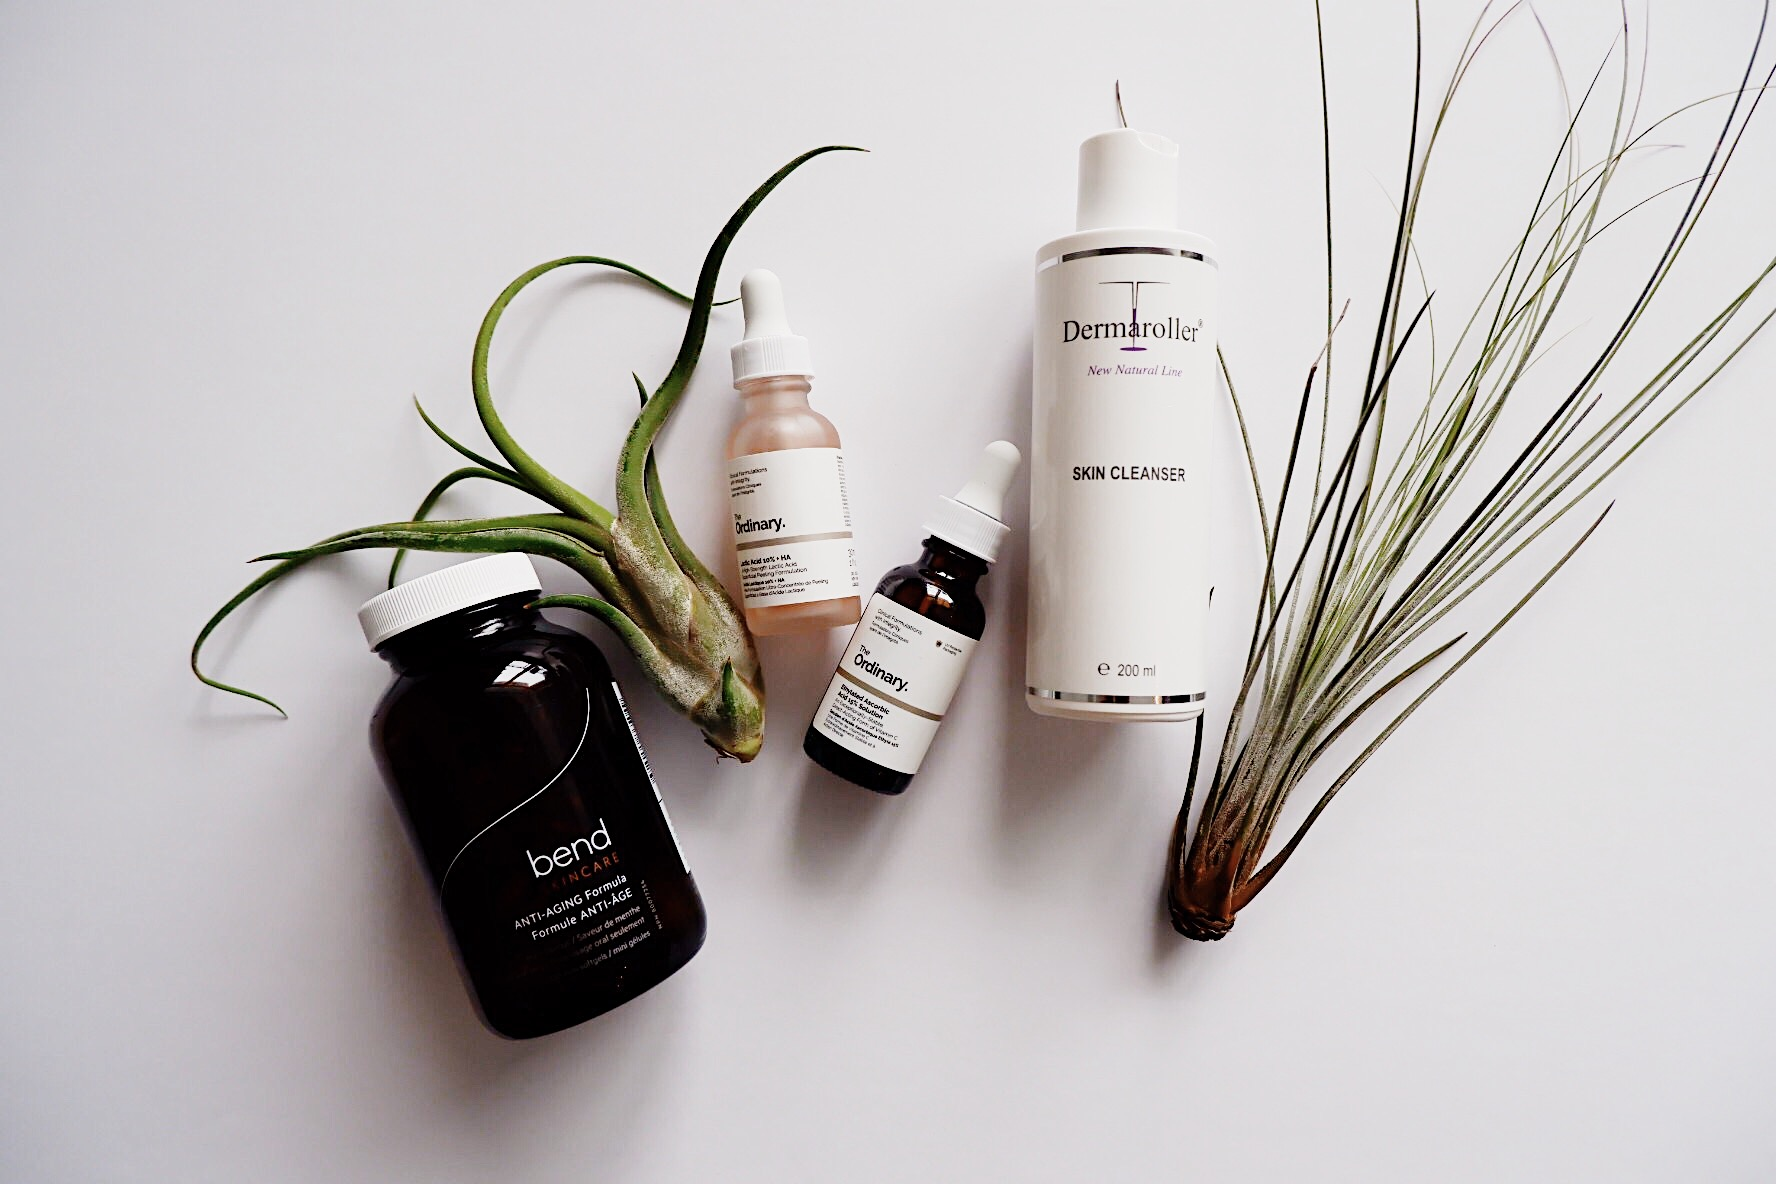 flawless skin care products